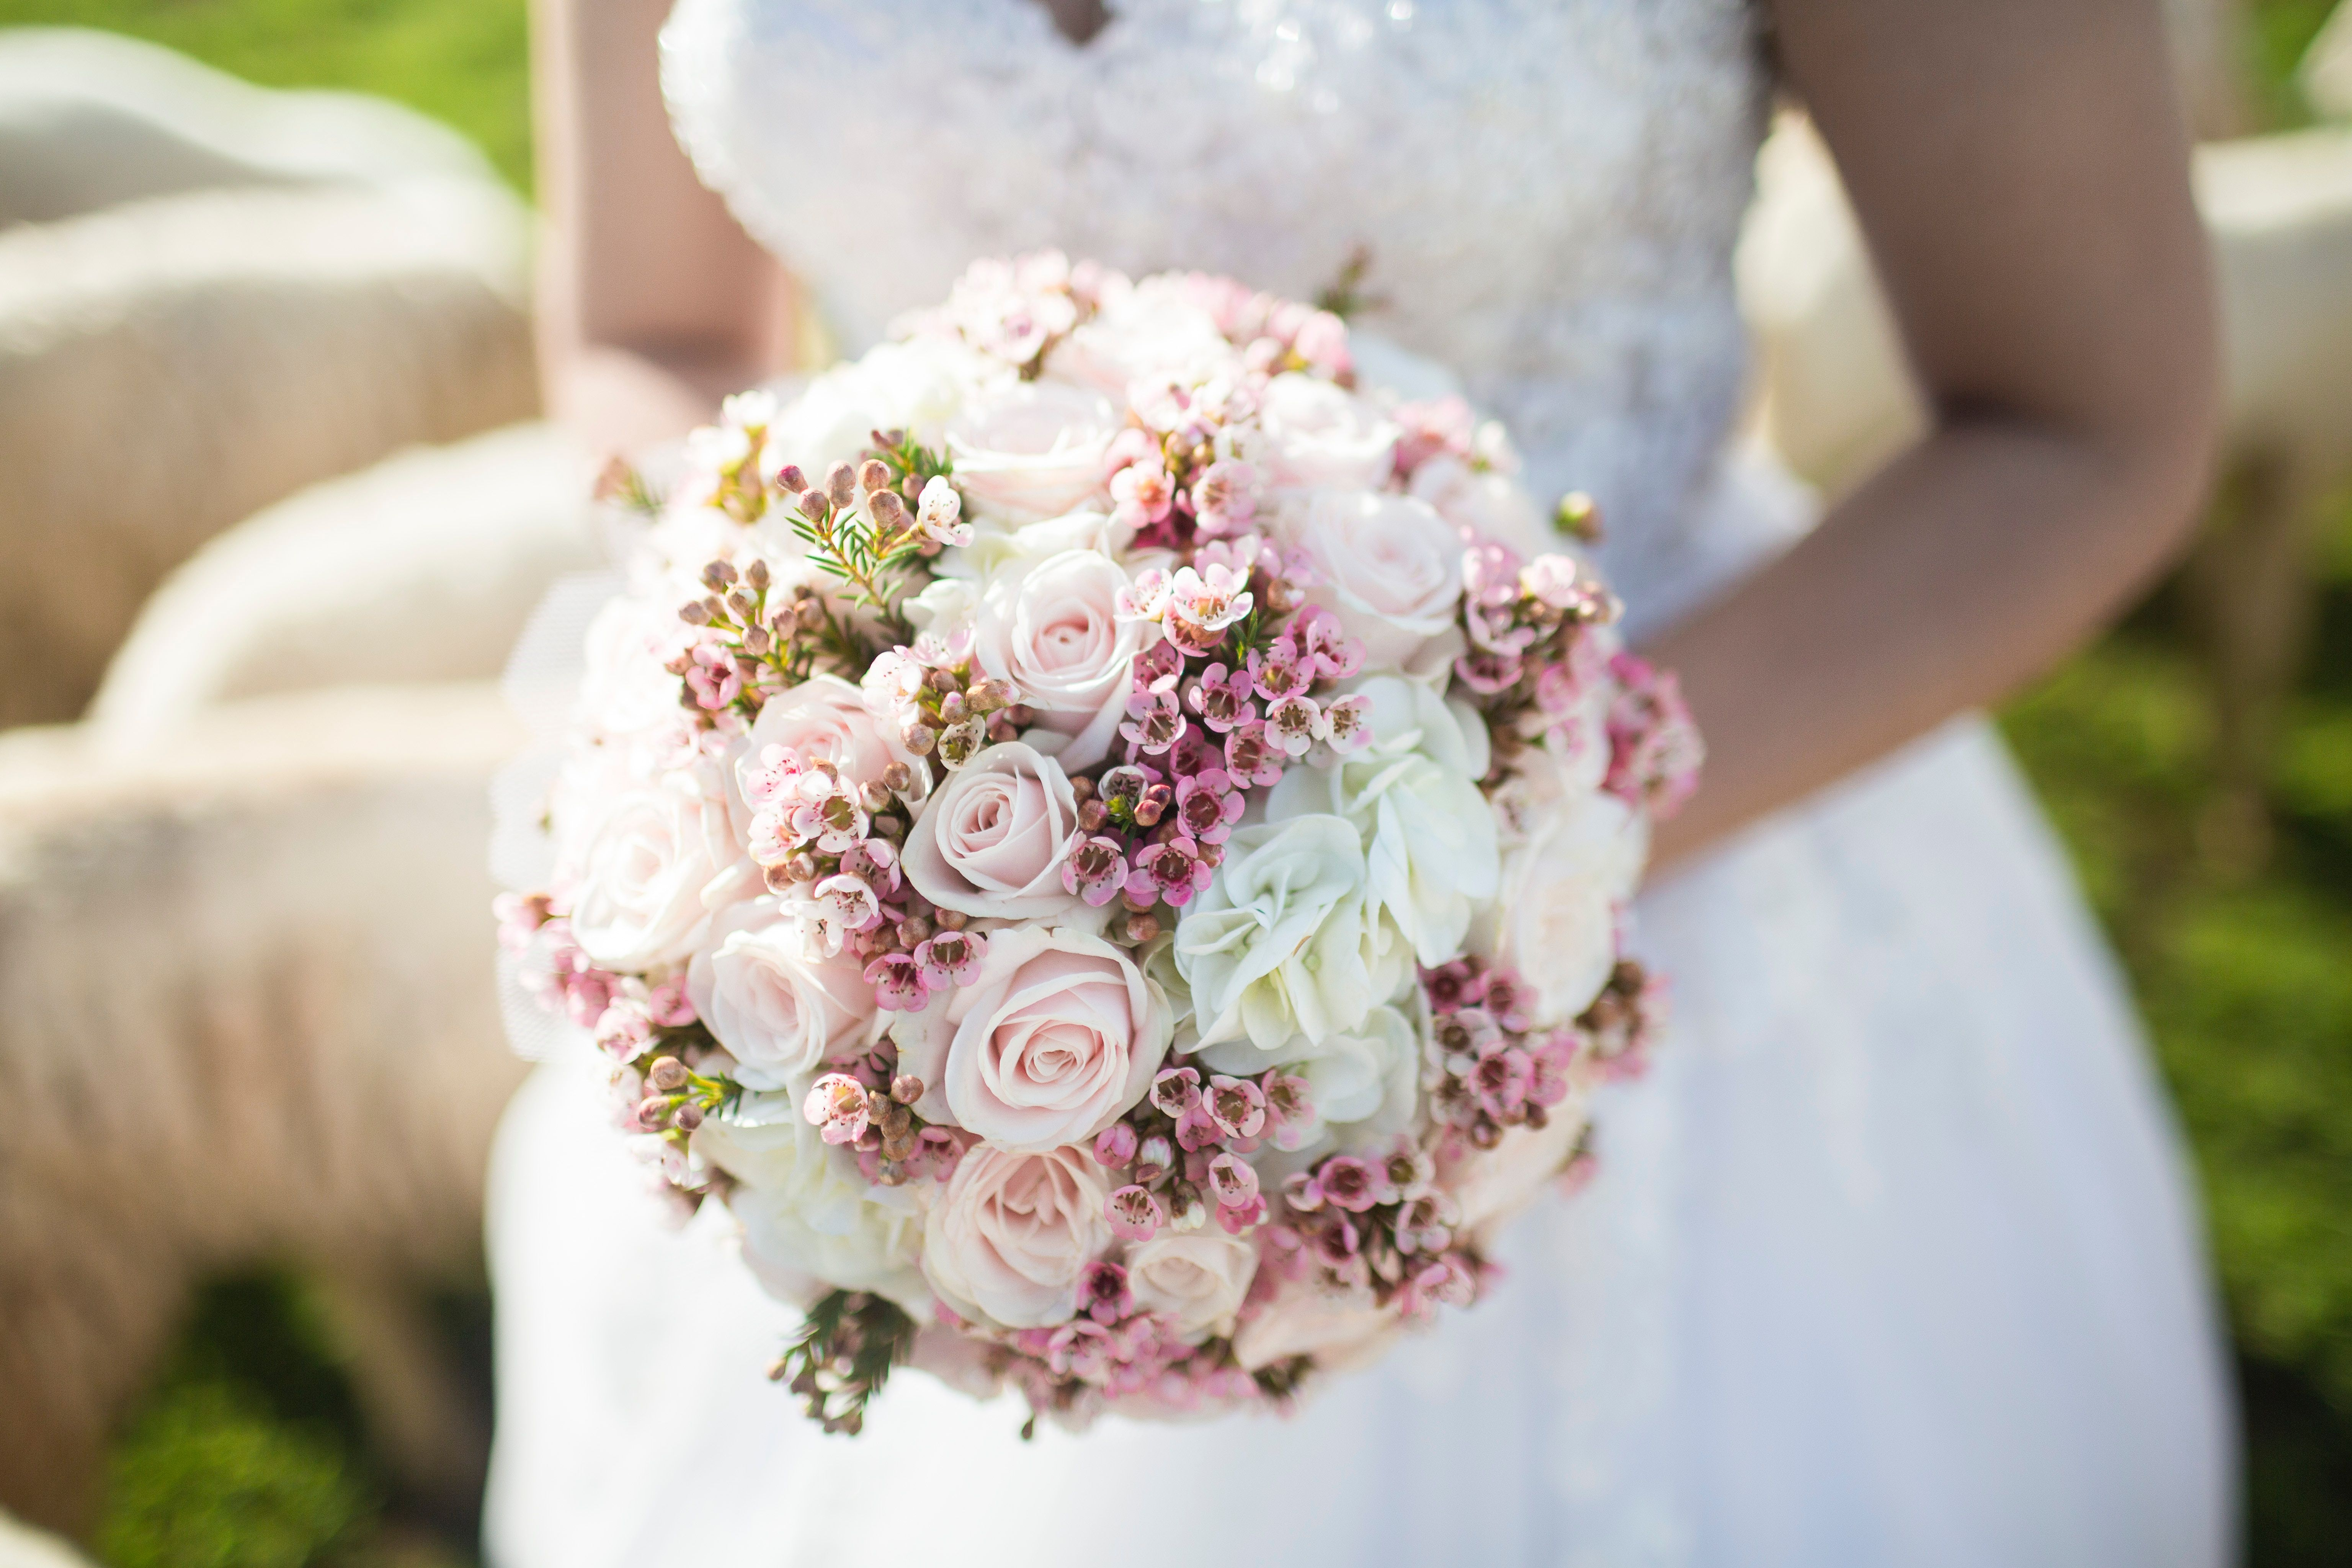 Save Money On Wedding Flowers By Making Your Own Bridal Bouquet Diy Flower Bouquet Wedding Wedding Flower Pictures Bridal Bouquet Cost